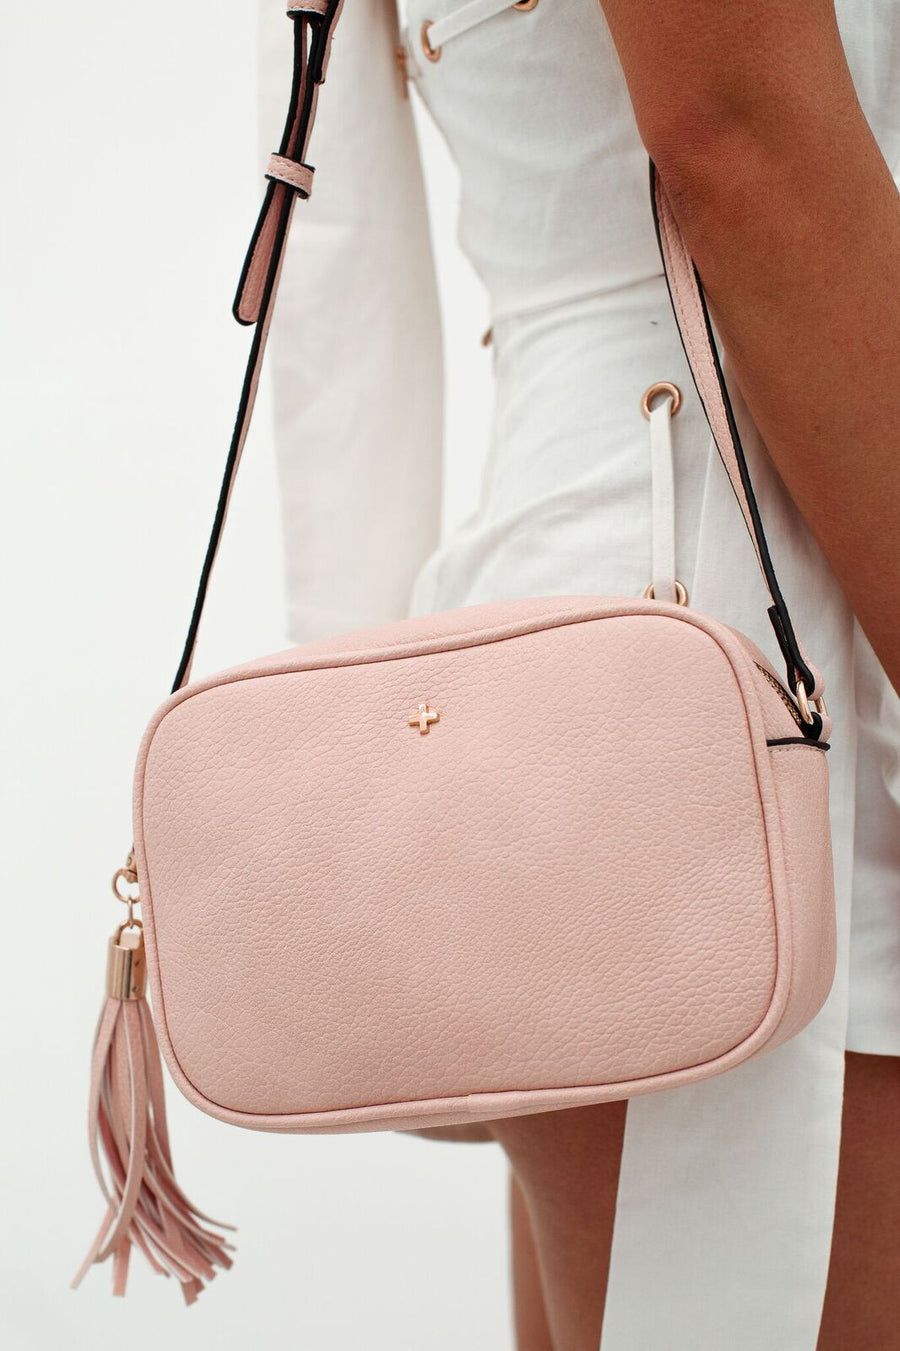 Gracie Bag in Pastel Pink